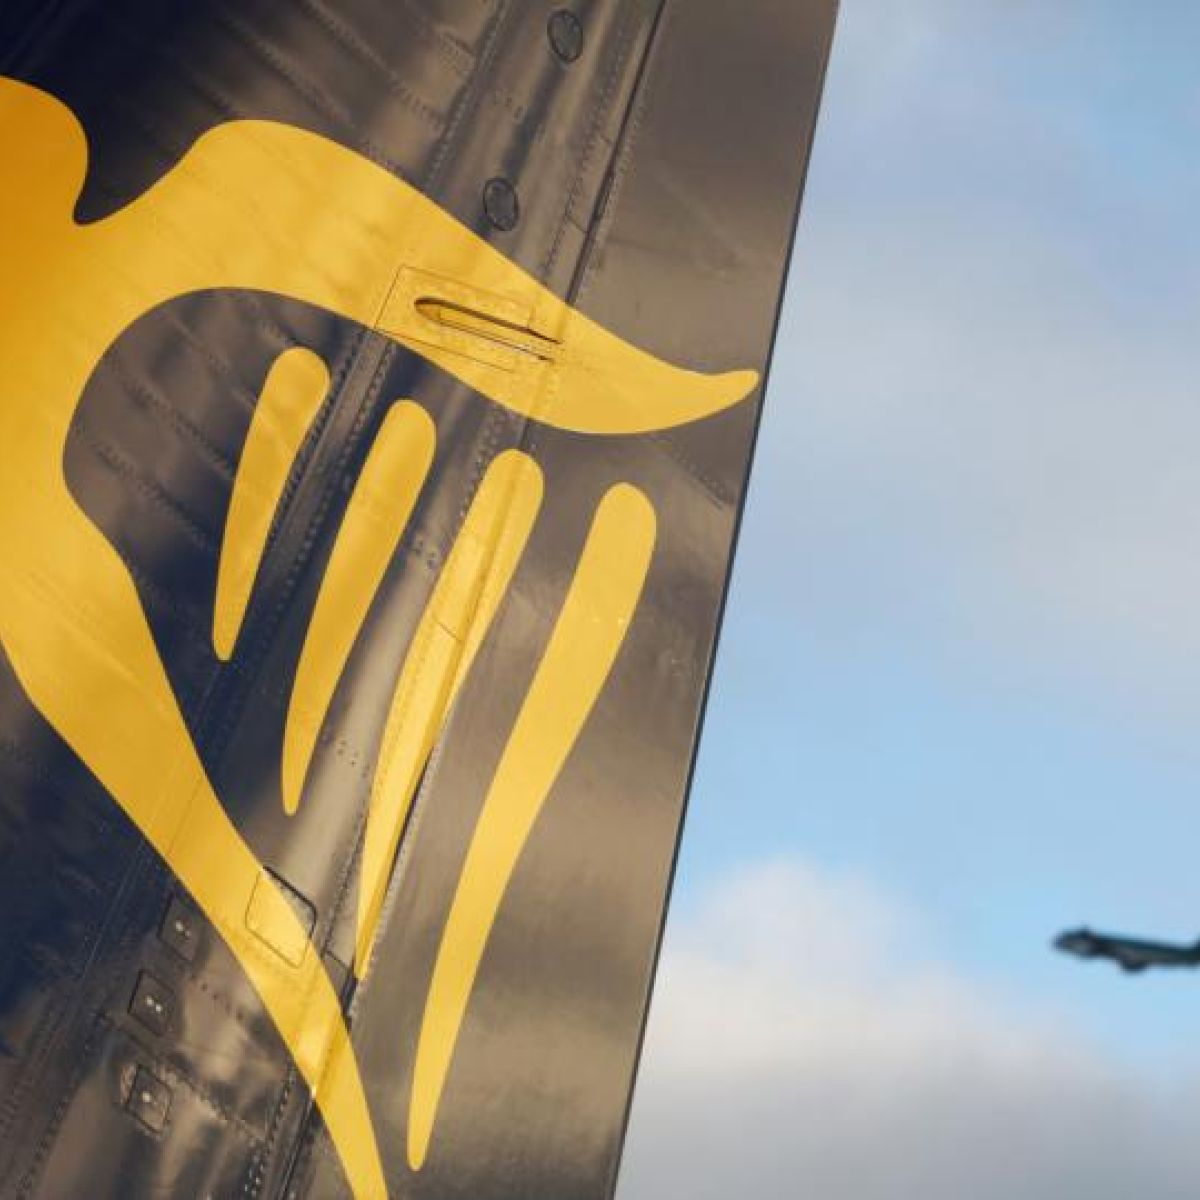 Oleary warns of ryanair profit slump as fuel and labour costs increase fandeluxe Image collections